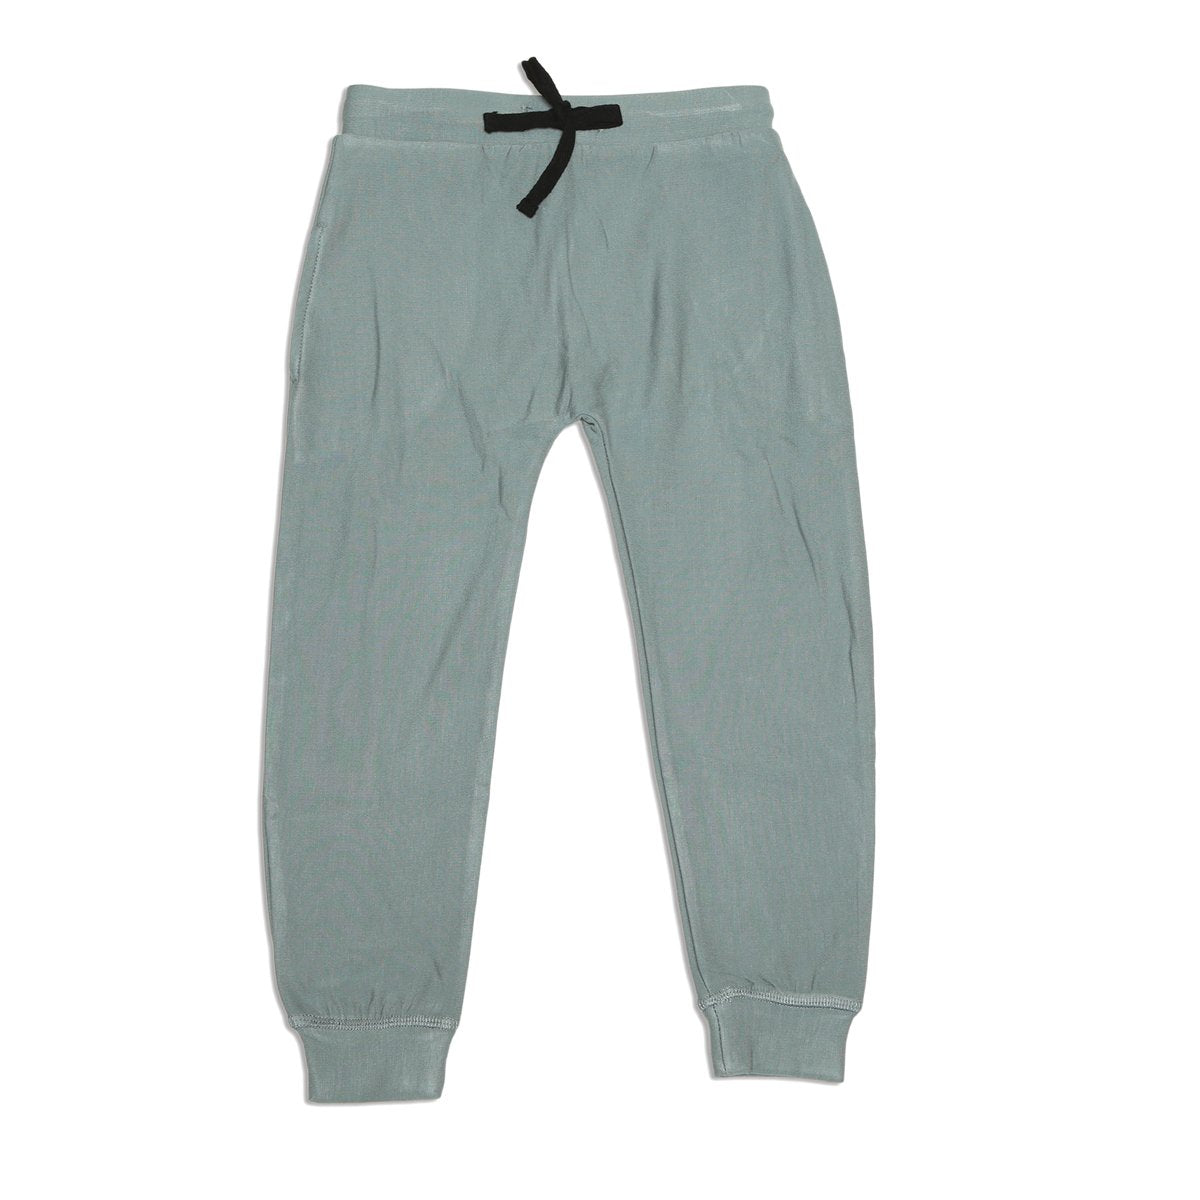 soft bamboo fleece harem pants for boy